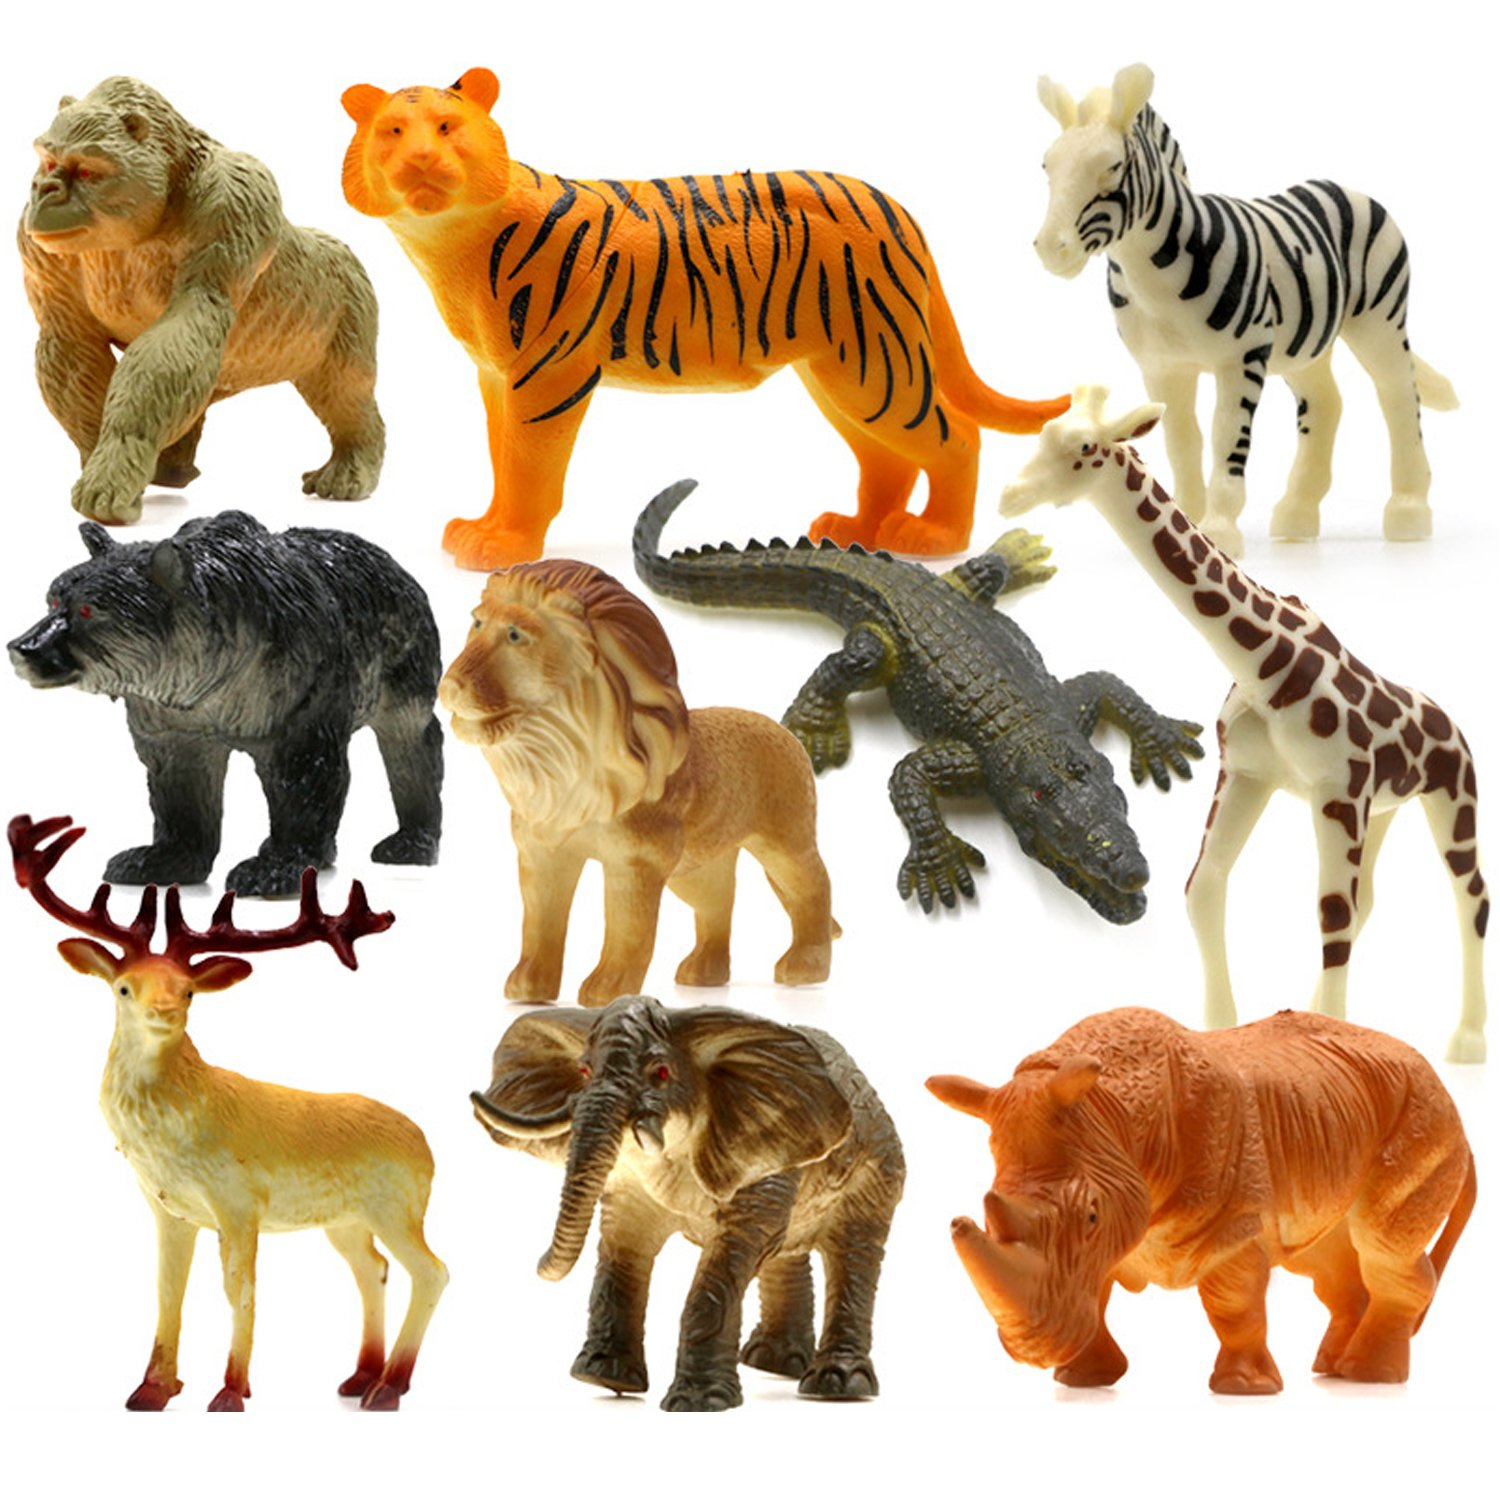 Animals Figure54 Piece Mini Jungle Animals Toys Set With Gift Box Realistic Wild Making Things Convenient For Customers Animals & Dinosaurs